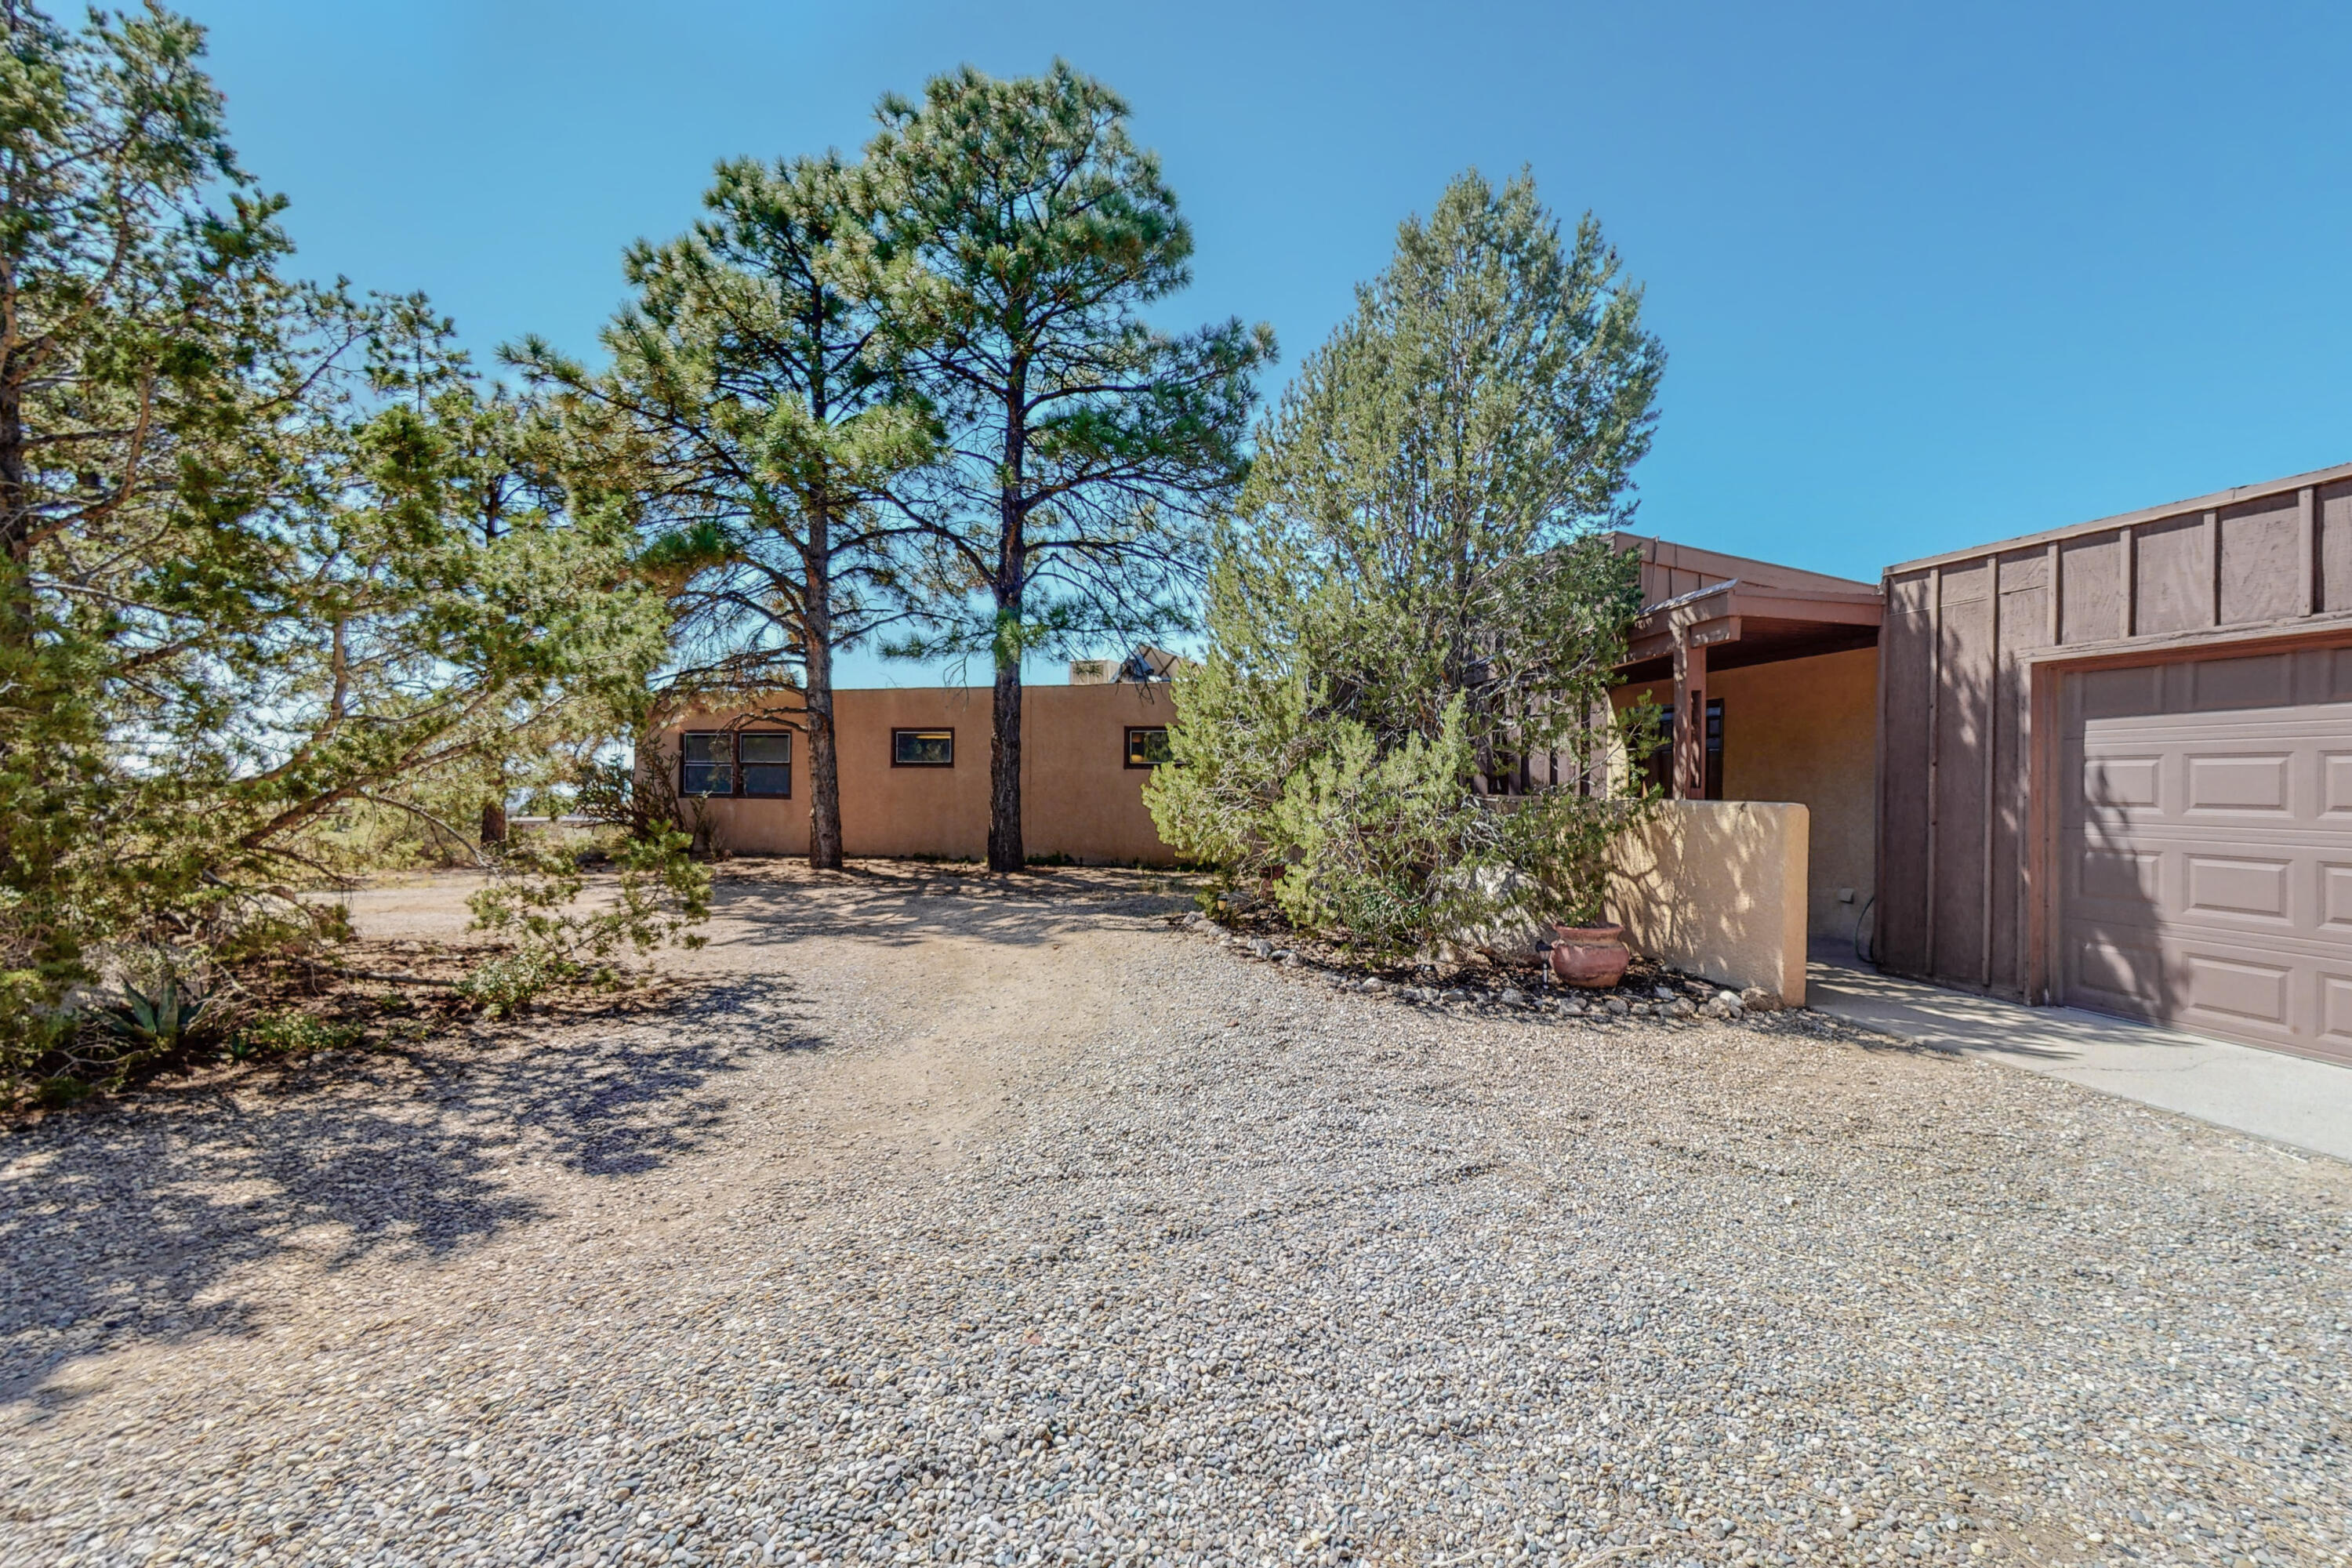 Welcome Home!  Views! 4 bedroom single story home now available in highly sought after Sandia Heights.  Home sits on nearly 3/4 of an acre.  Brand new carpet and fresh paint!  Large living room with open floor plan!  The best value in Sandia Heights!